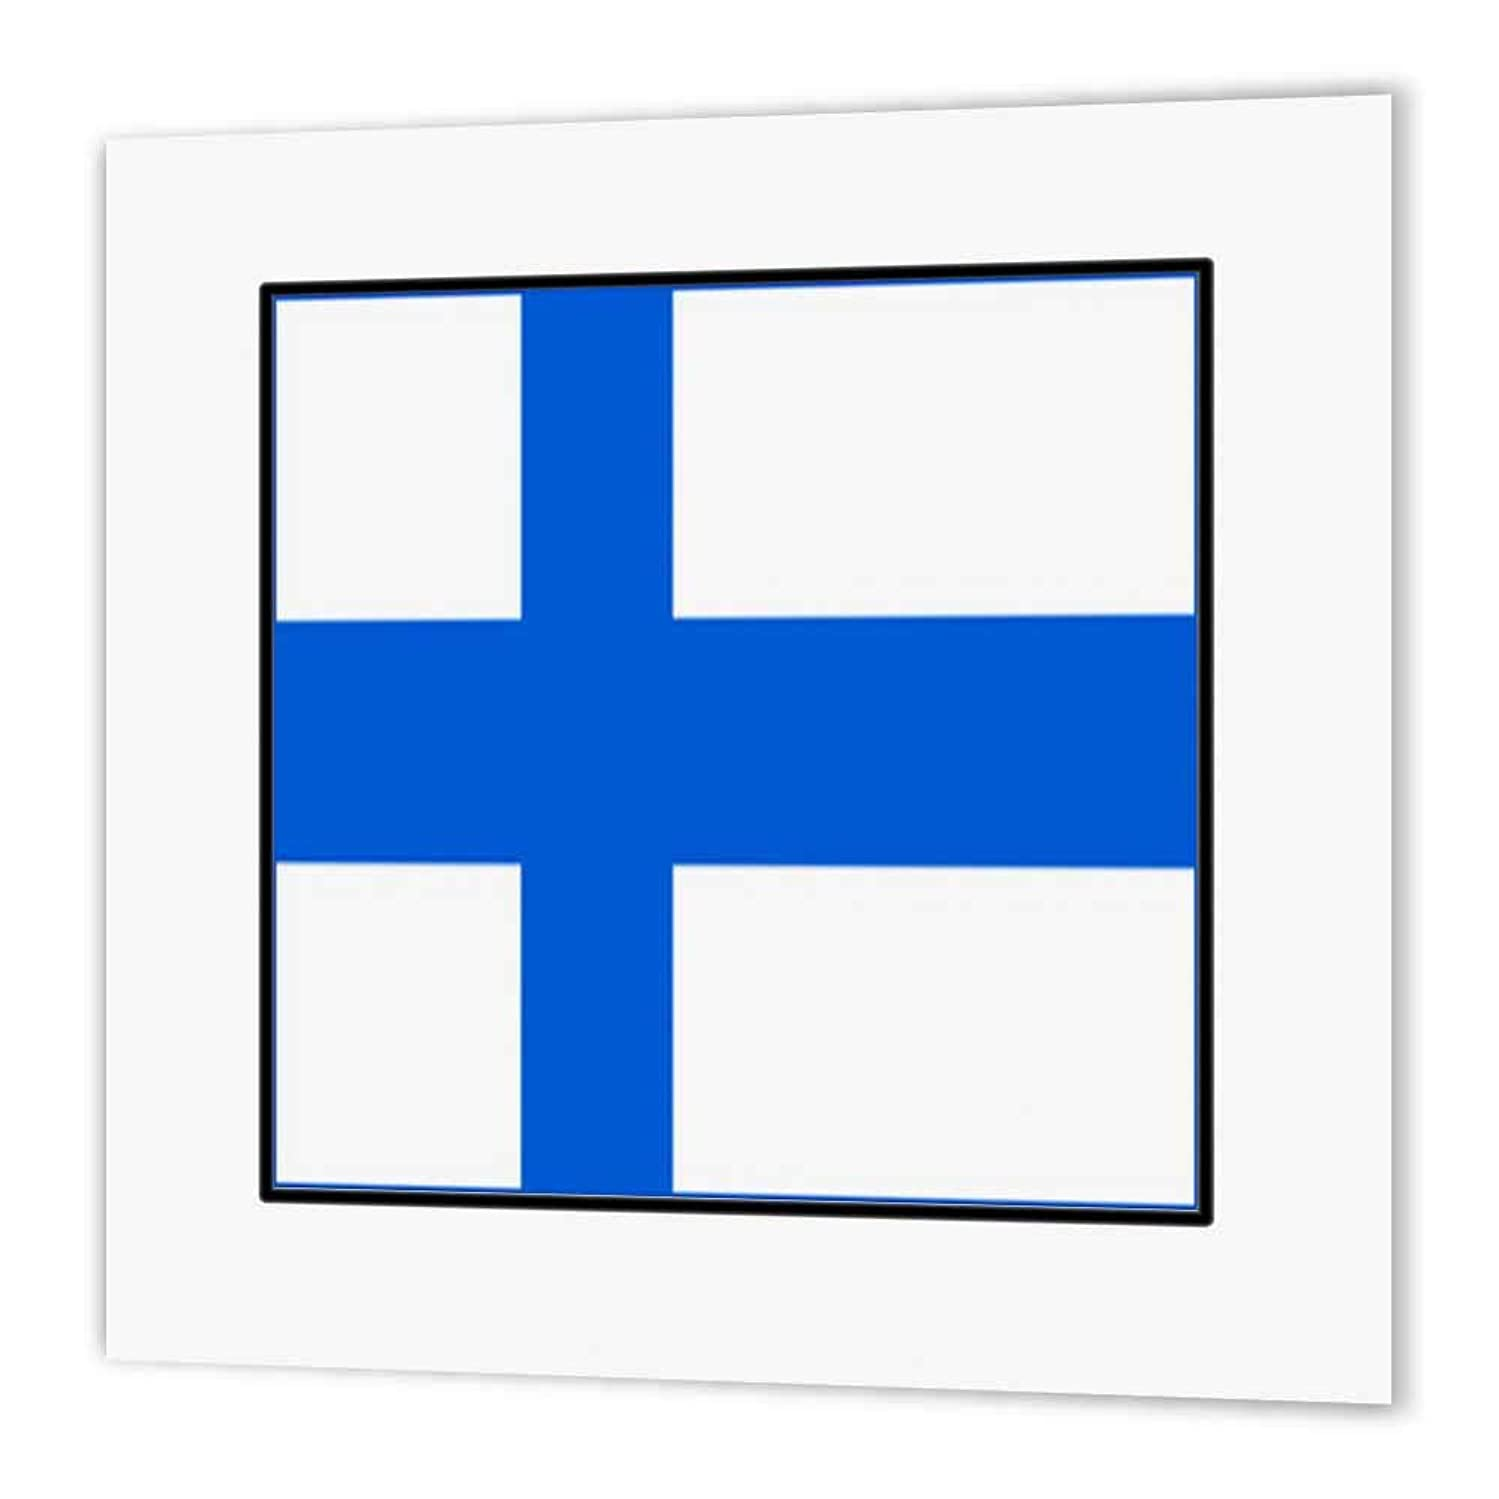 3dRose ht_80959_1 Photo of Finland Flag Button Iron on Heat Transfer Paper for White Material, 8 by 8